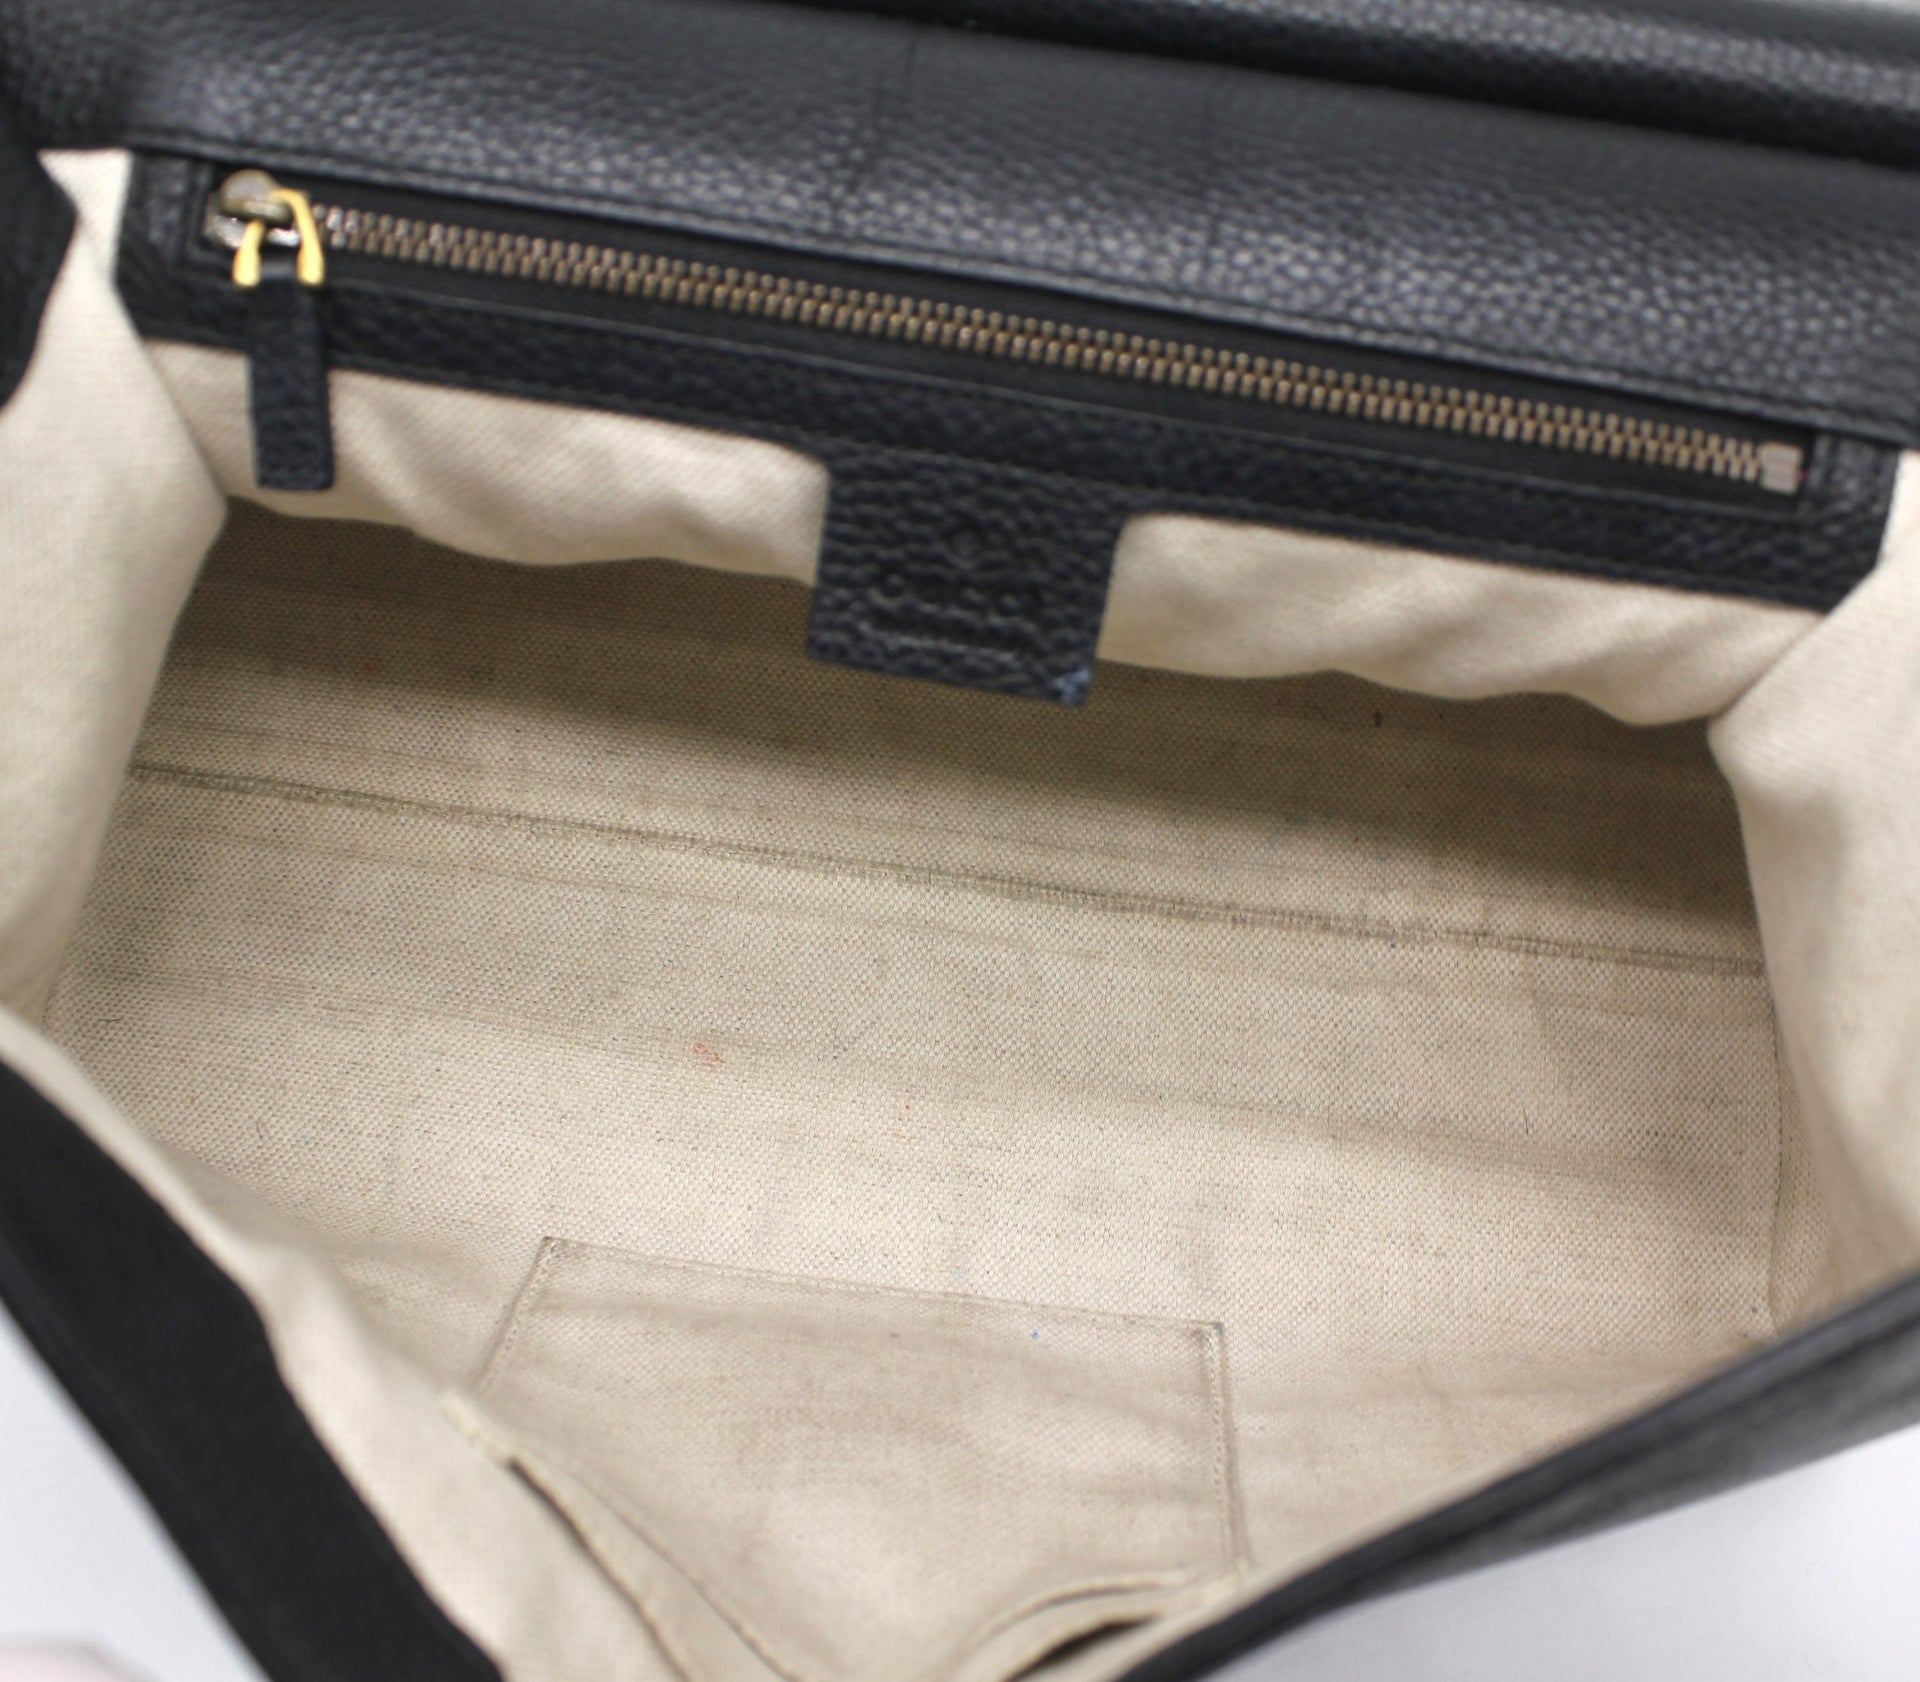 GG Marmont Small Top Handle Bag